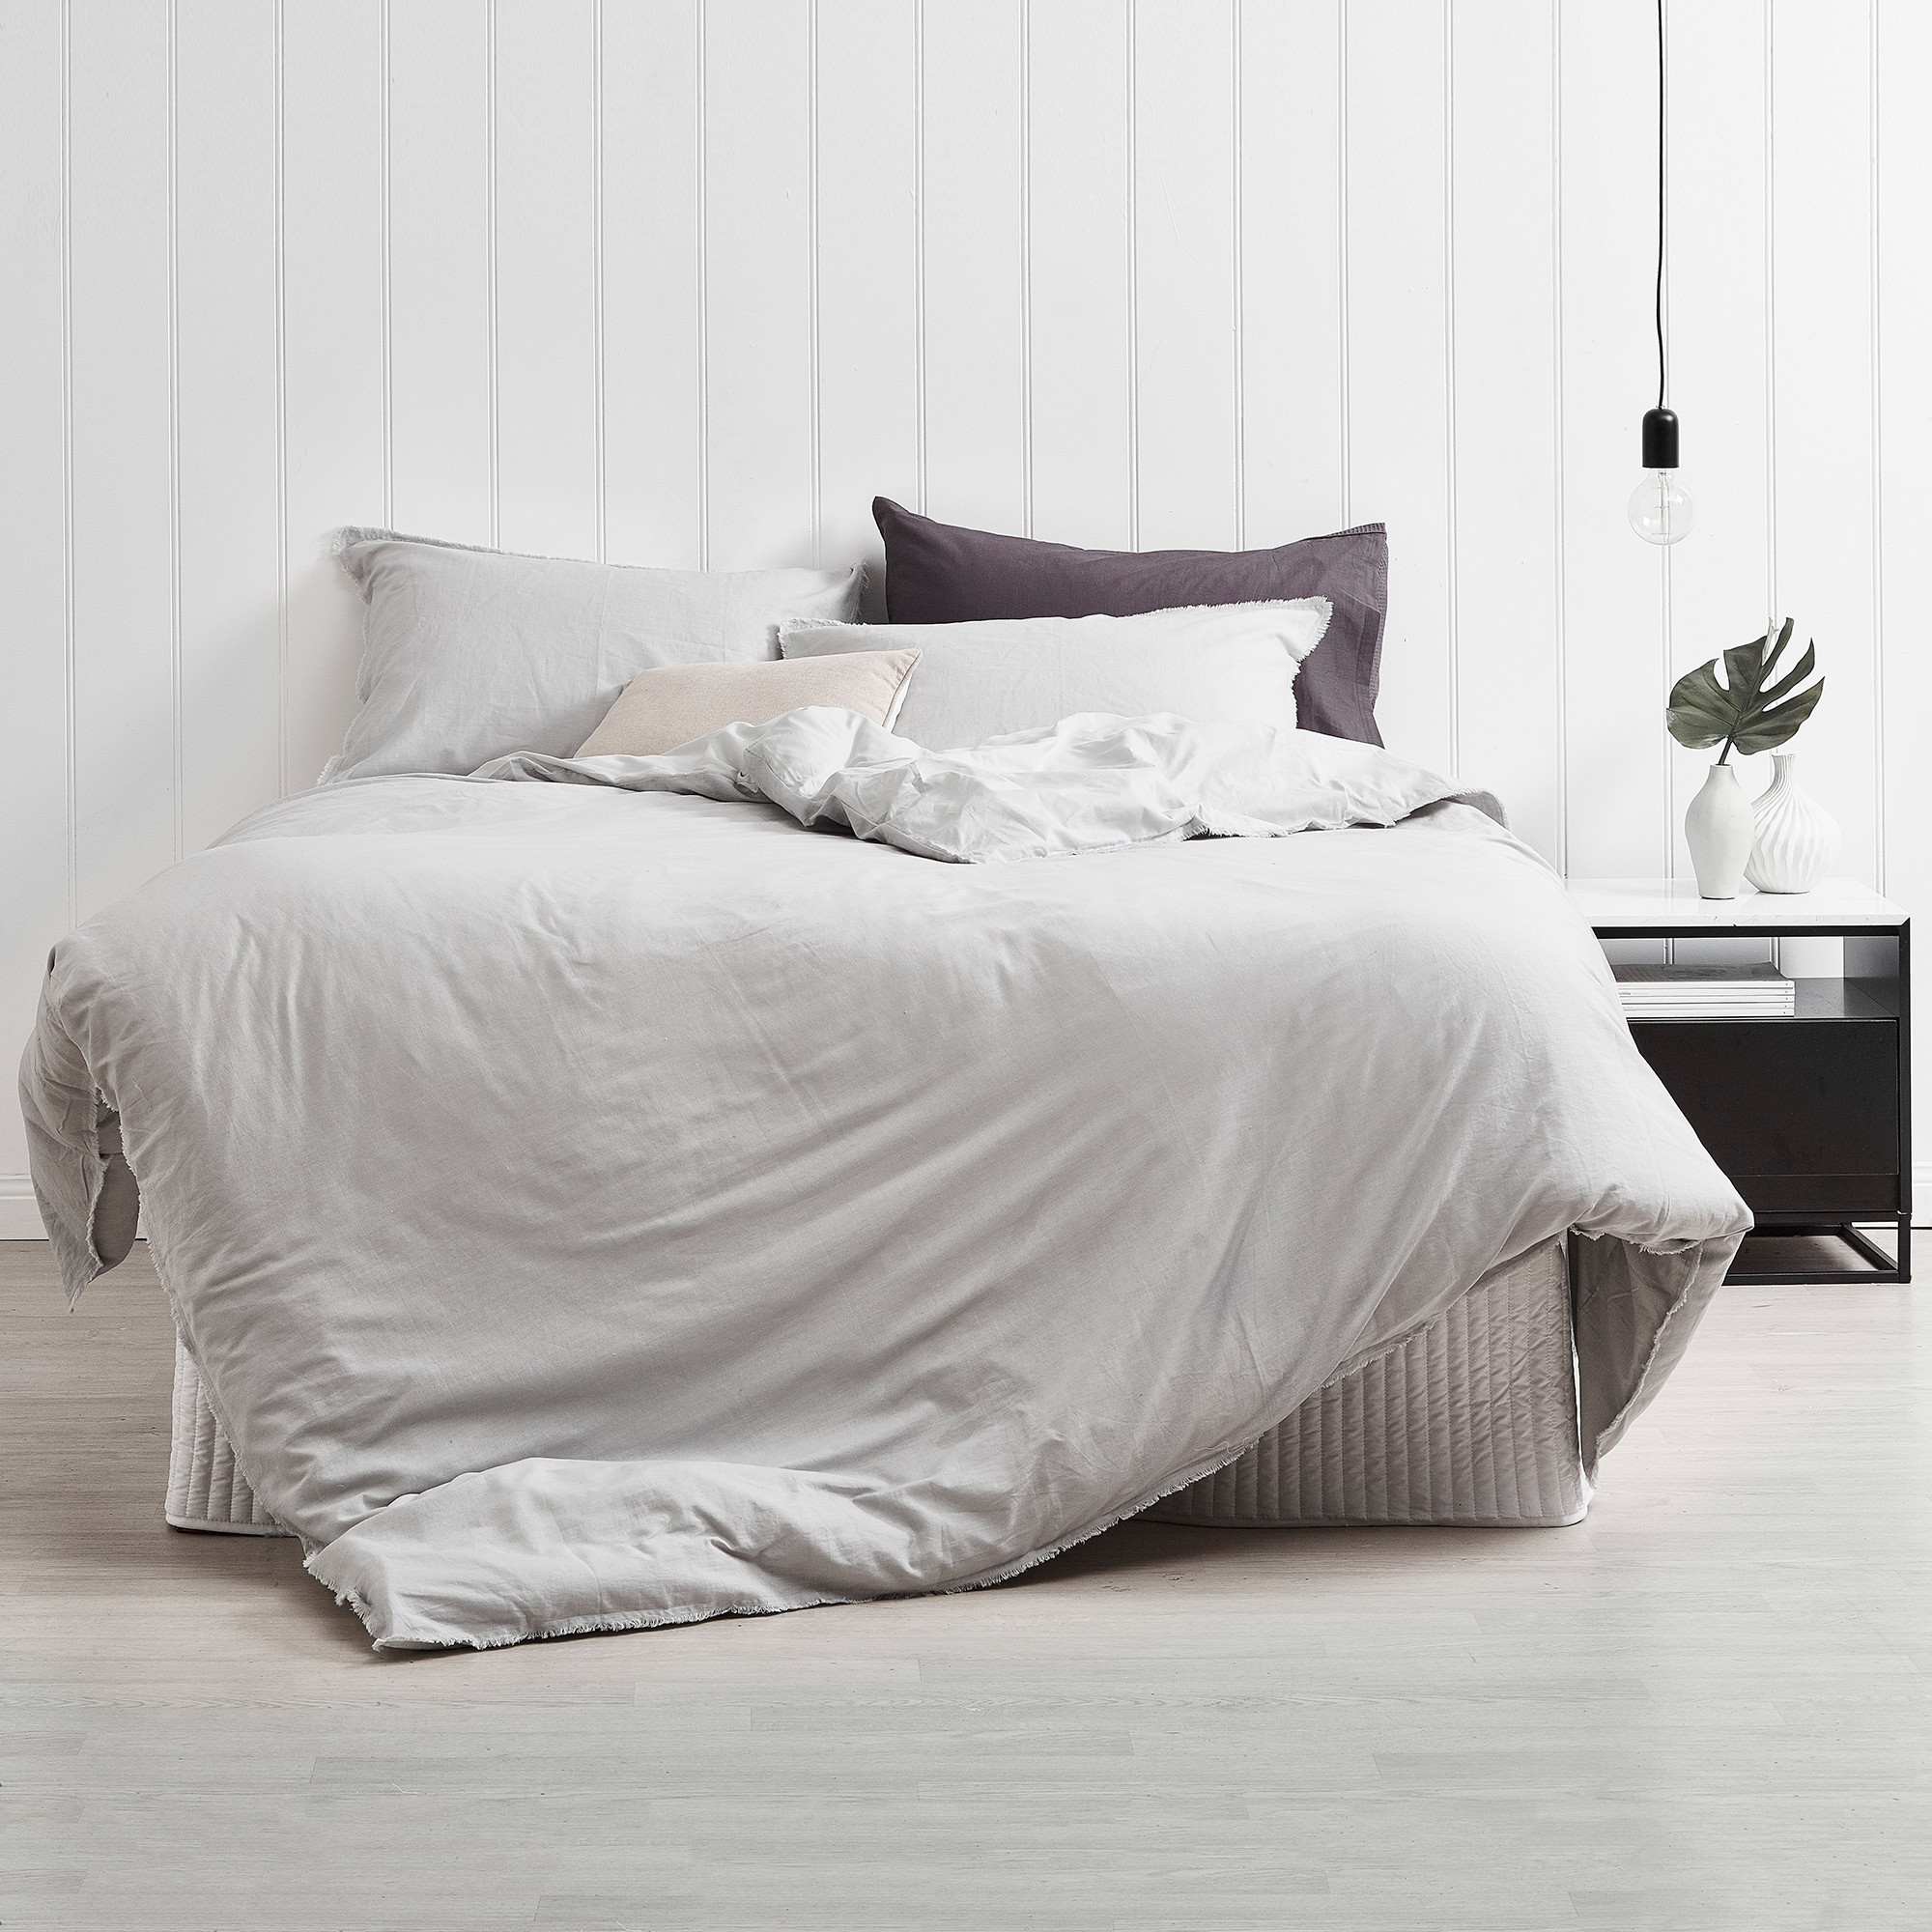 Quilt Cover Sets | Temple & Webster : what is a quilt cover - Adamdwight.com